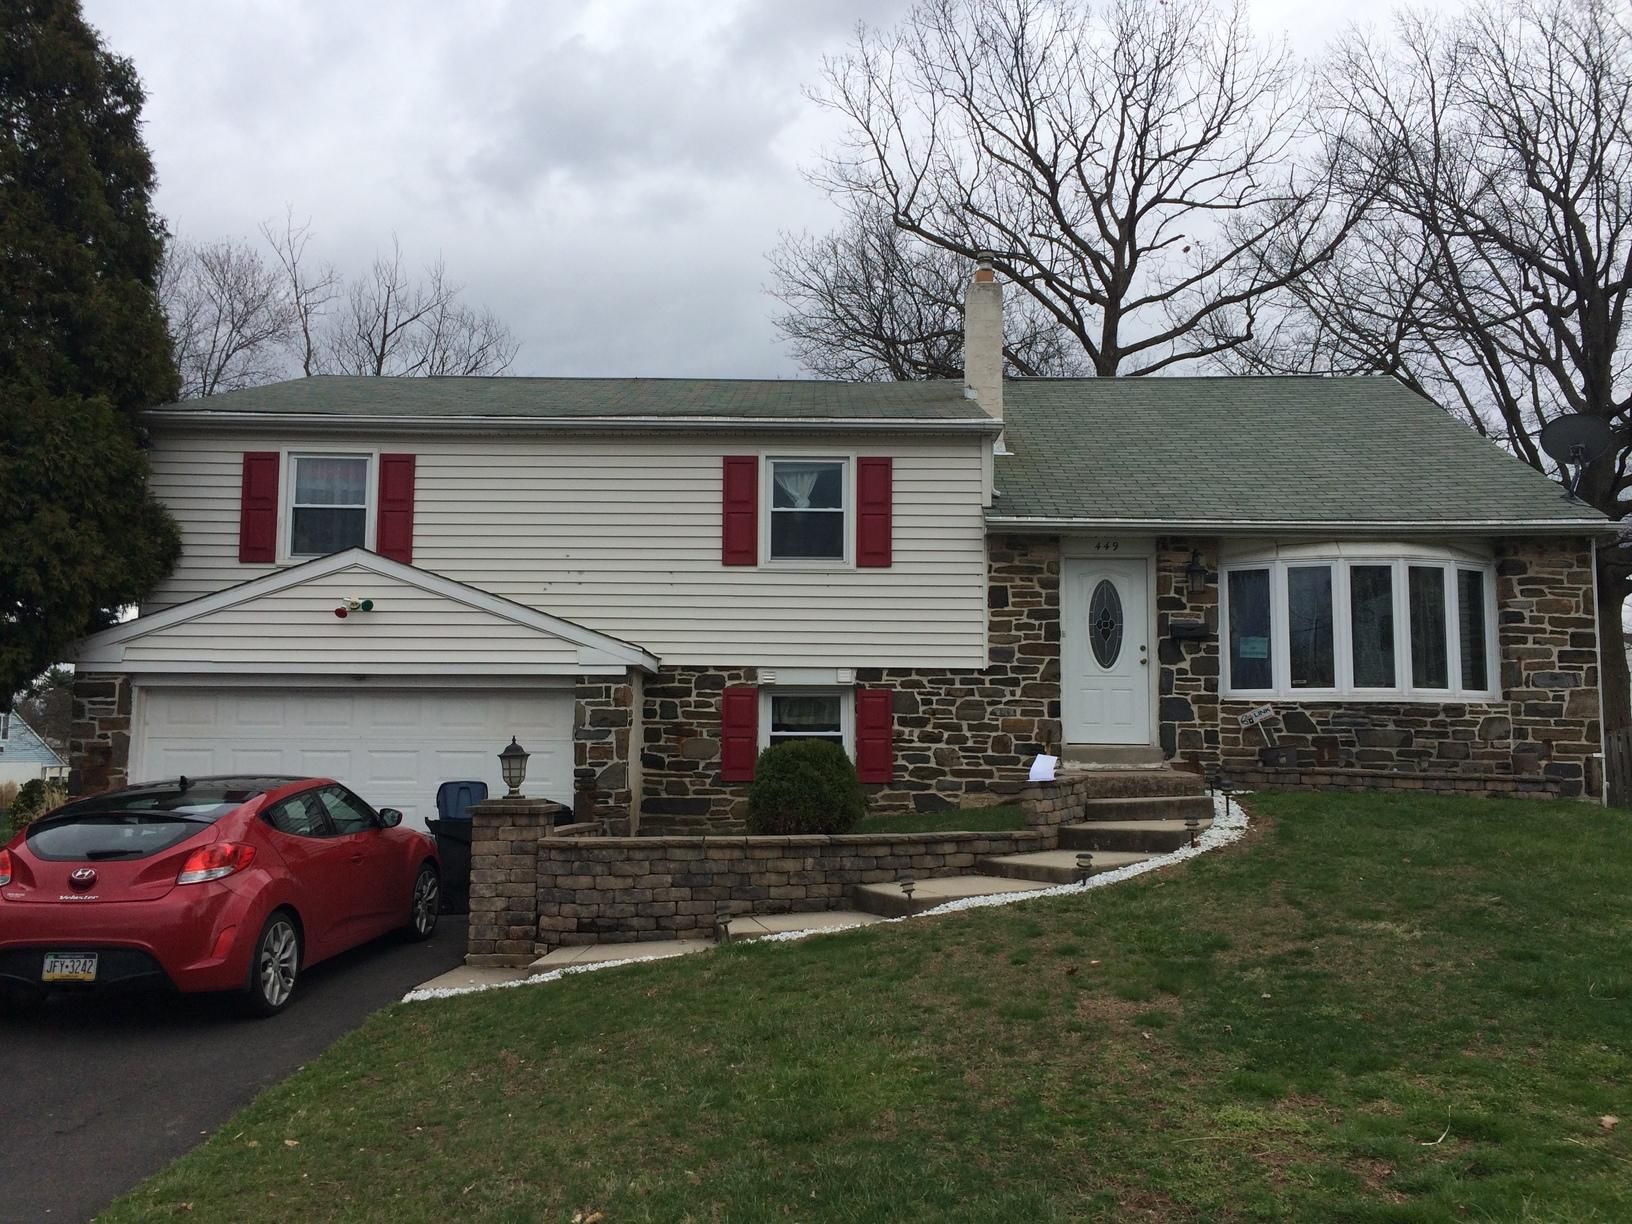 Owens Corning Roof and New Siding Installation in Warminster, PA - Before Photo